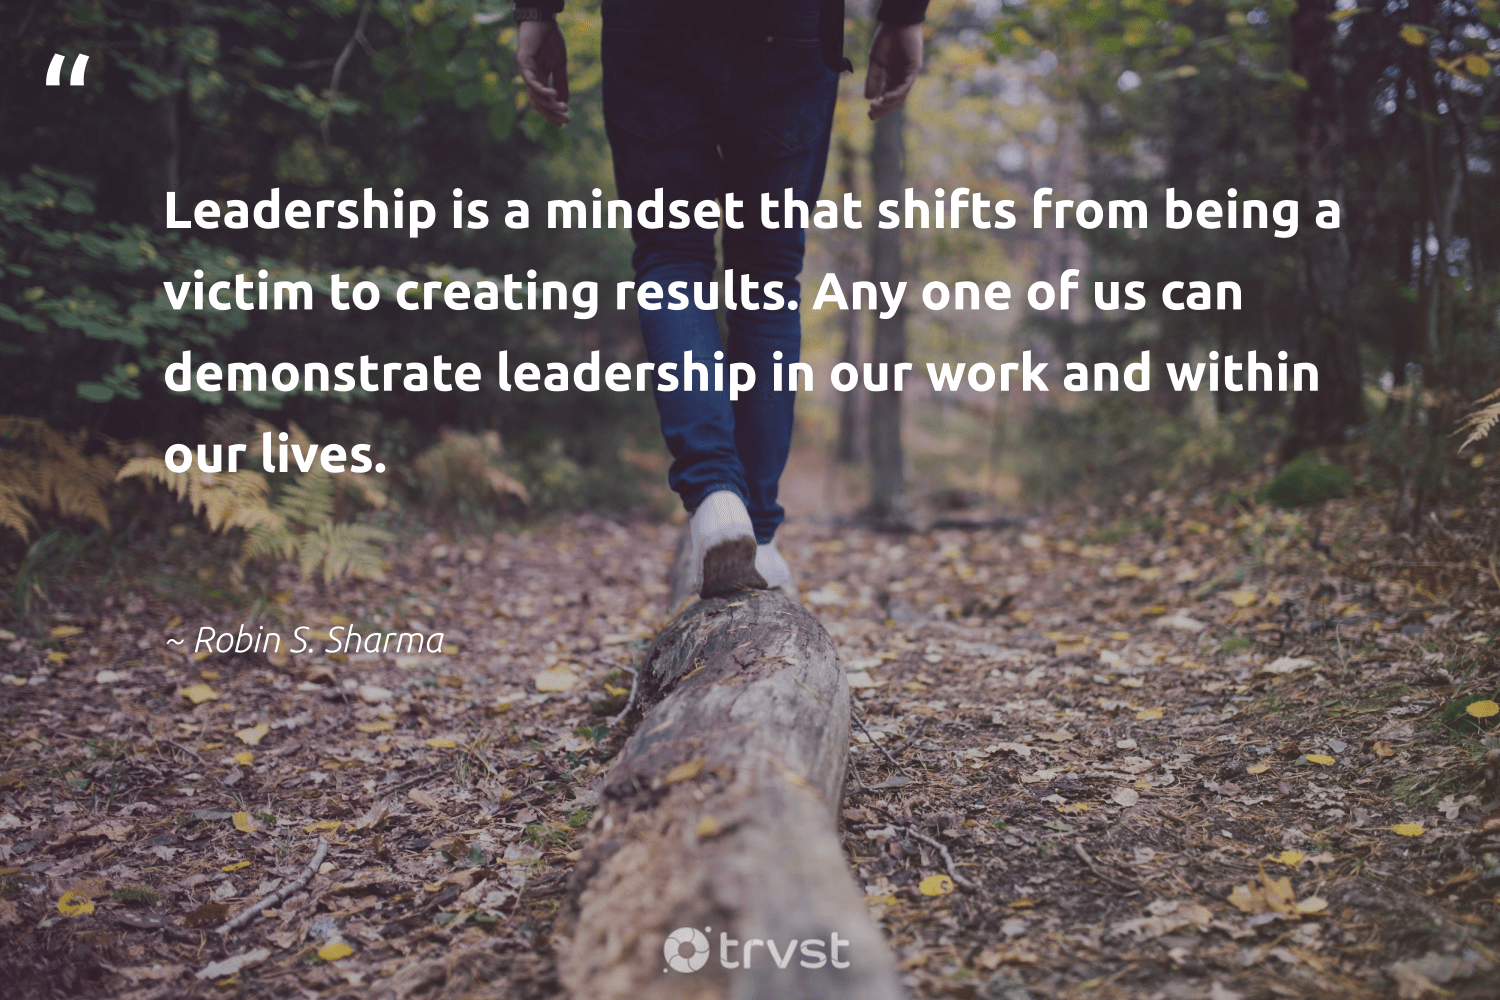 """""""Leadership is a mindset that shifts from being a victim to creating results. Any one of us can demonstrate leadership in our work and within our lives.""""  - Robin S. Sharma #trvst #quotes #mindset #results #leadership #growthmindset #begreat #health #ecoconscious #mindfulness #changemakers #togetherwecan"""